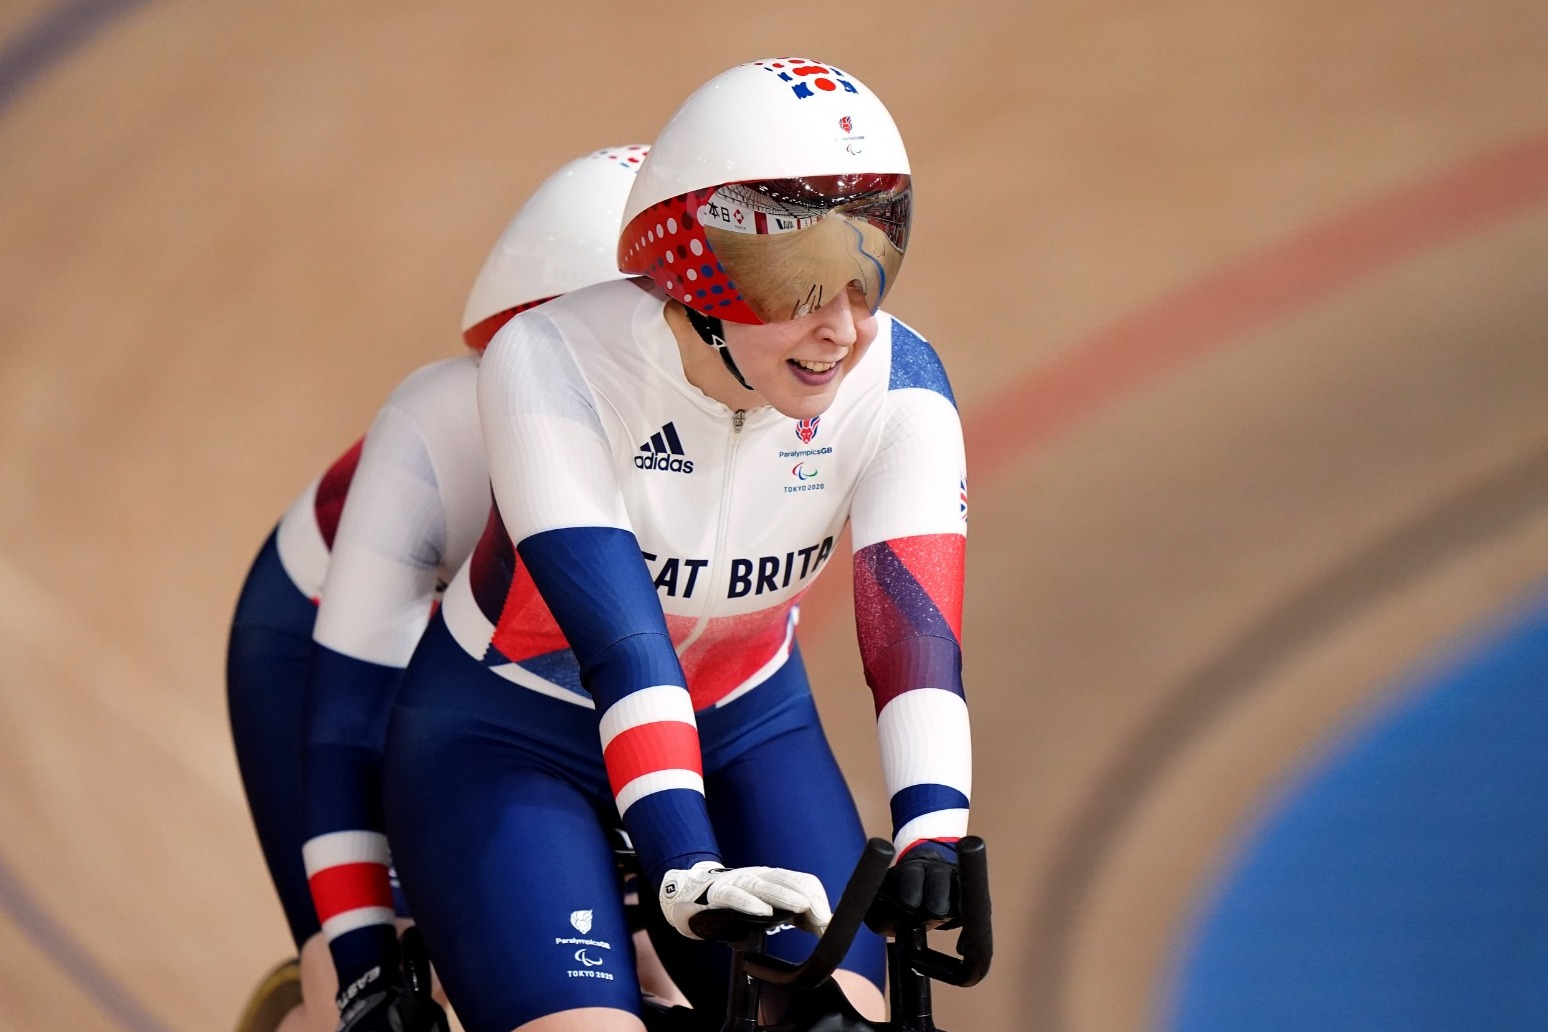 Aileen McGlynn takes GB's fourth cycling medal at Paralympics